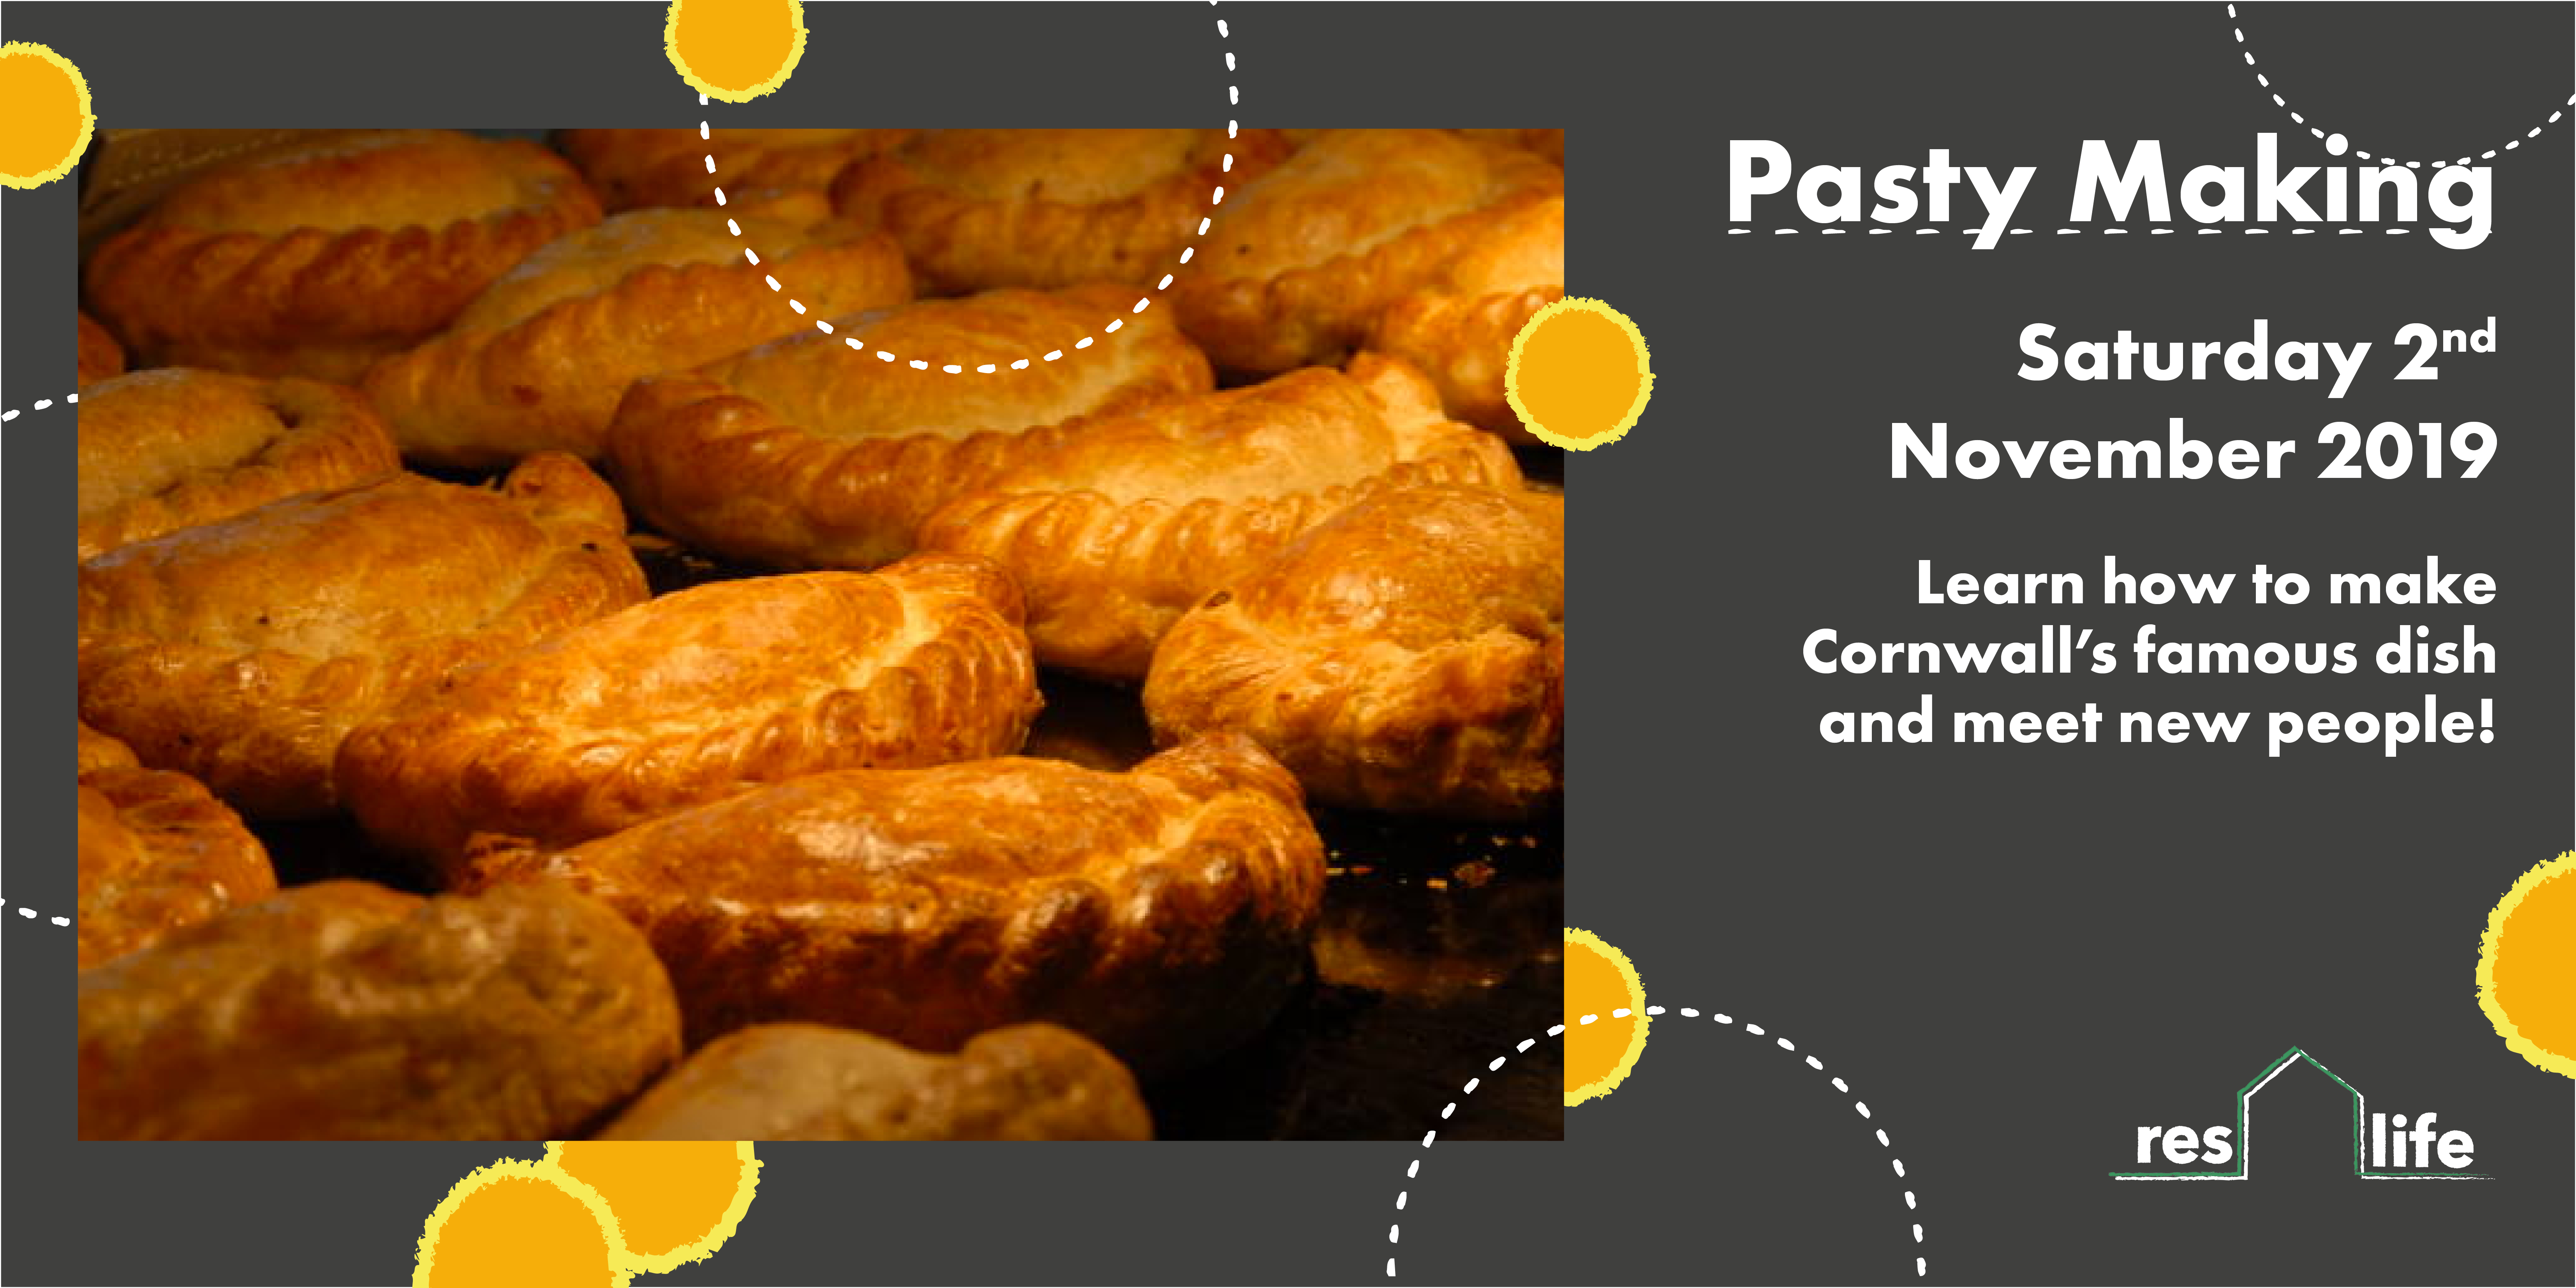 Pasty Making event